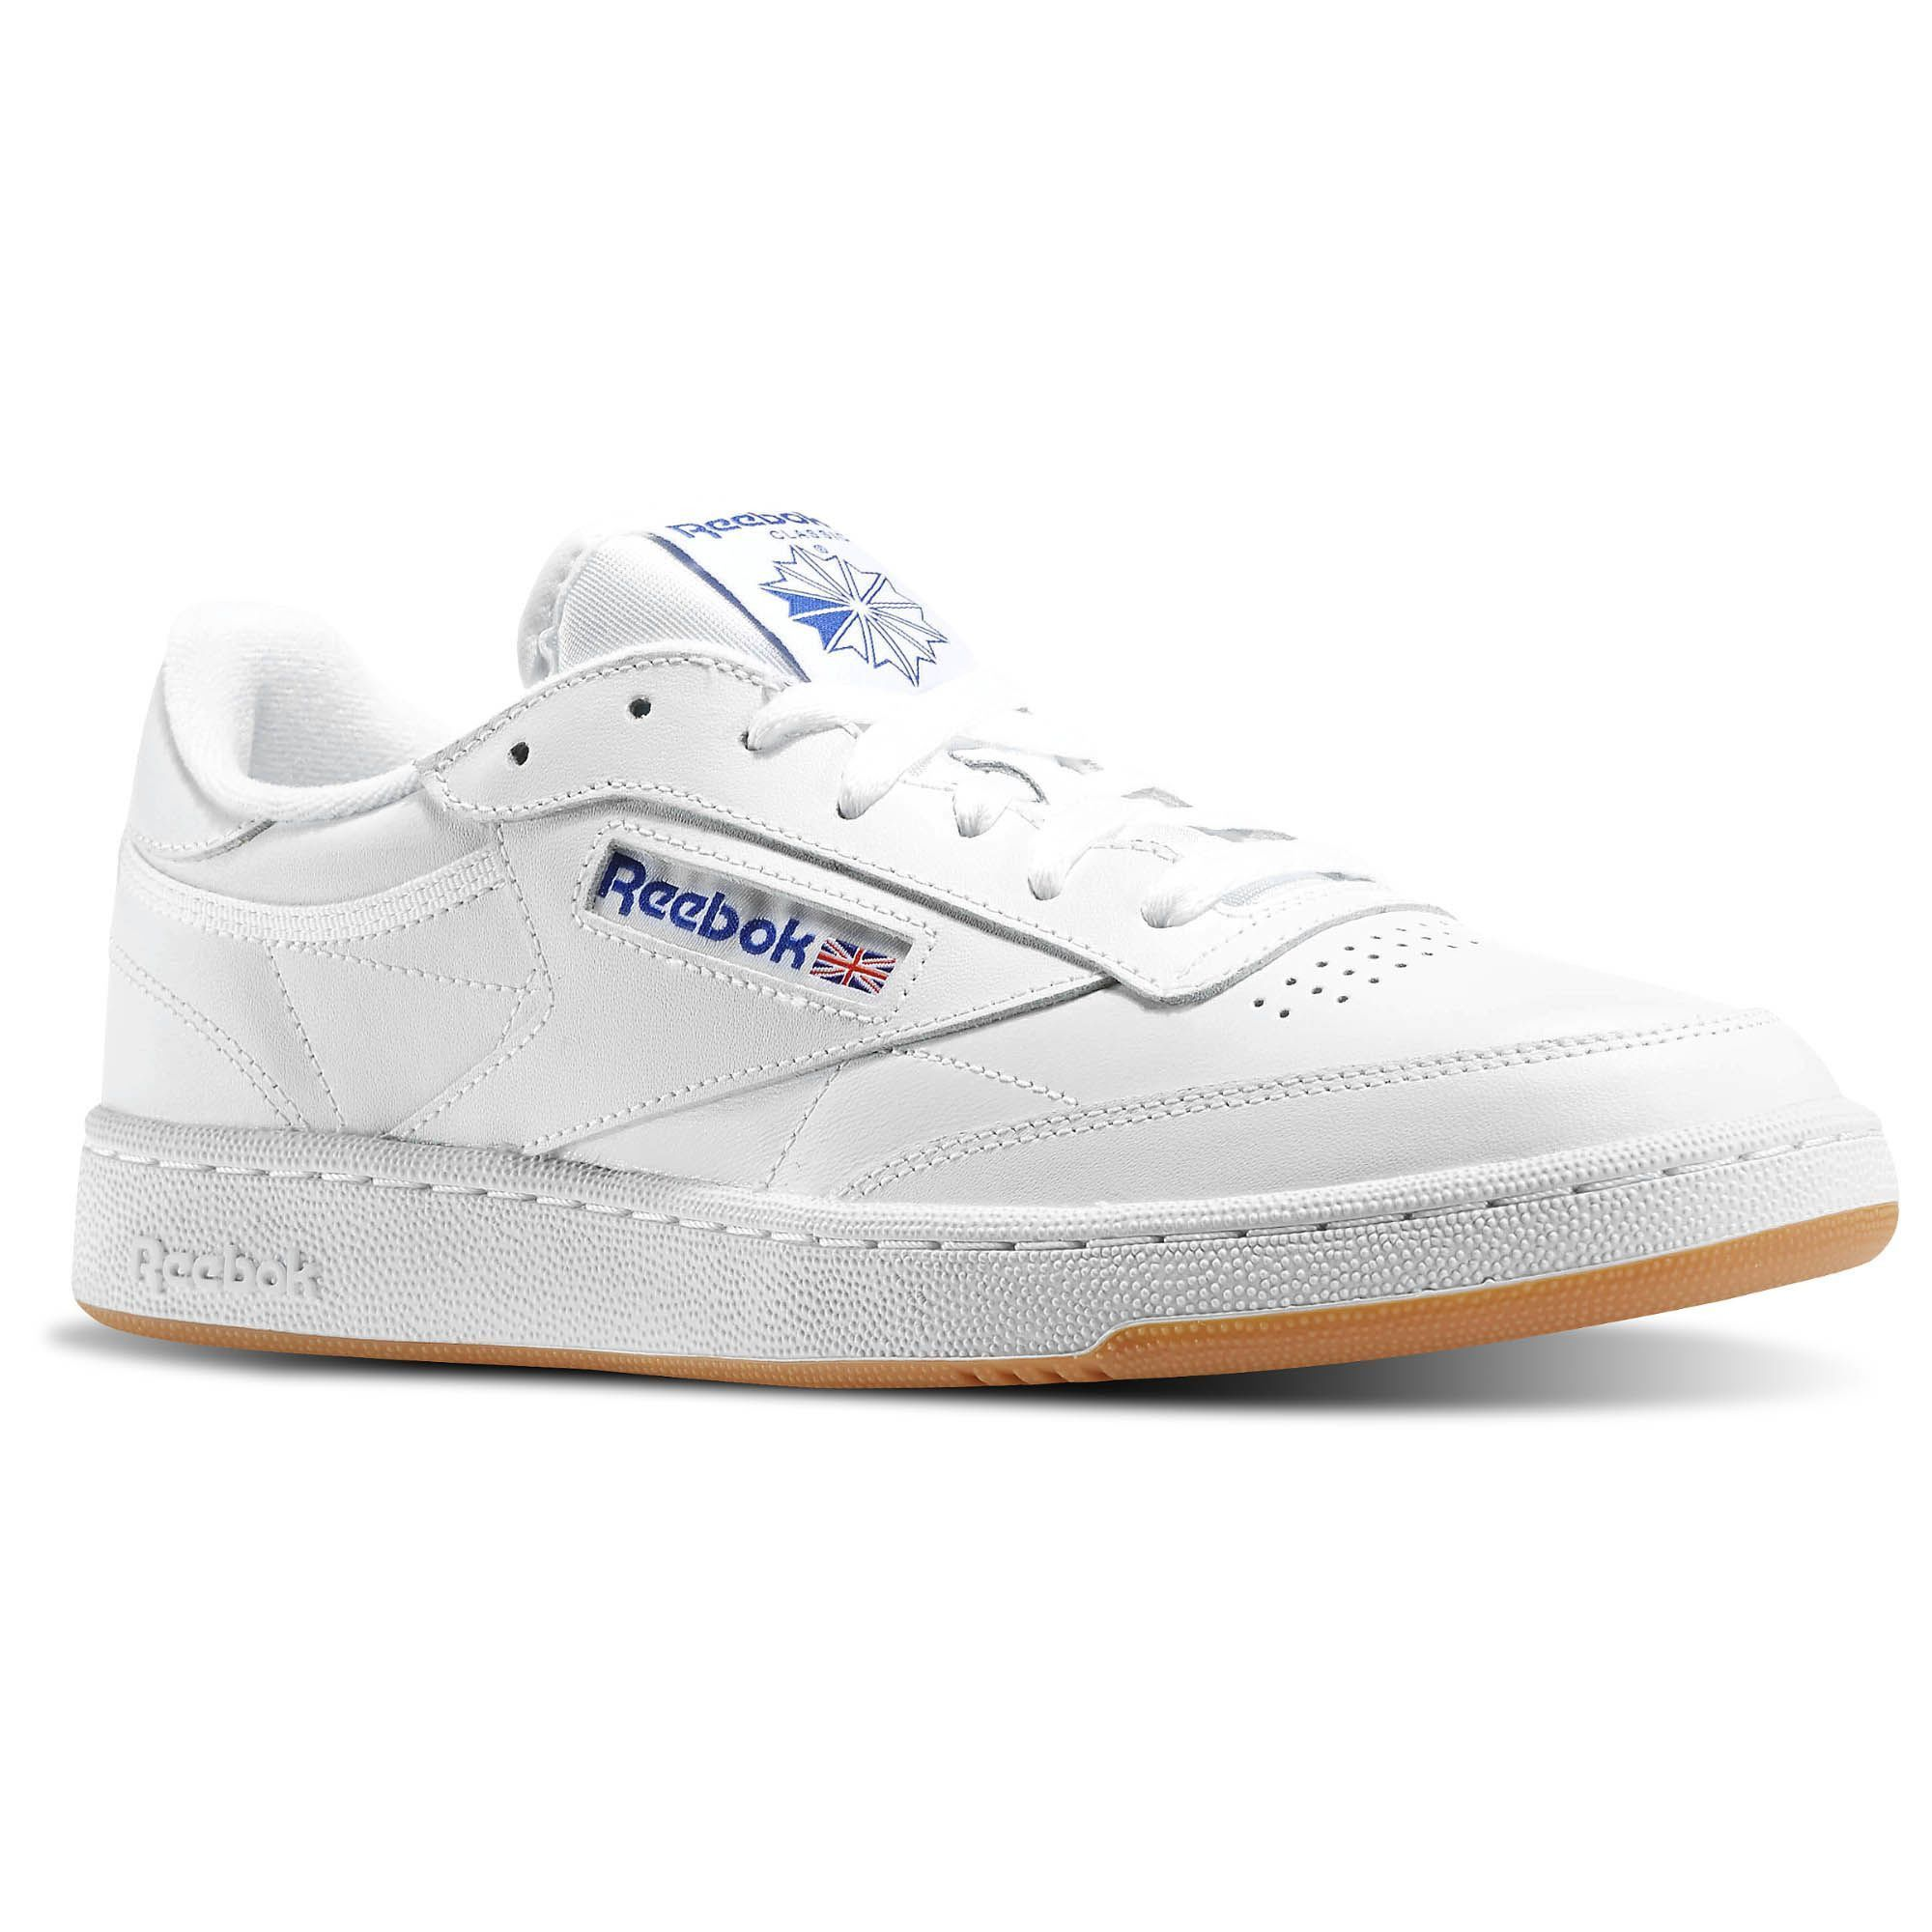 Reebok - Men's Club C 85 Low Leather Sneakers - White/Royal/Gum